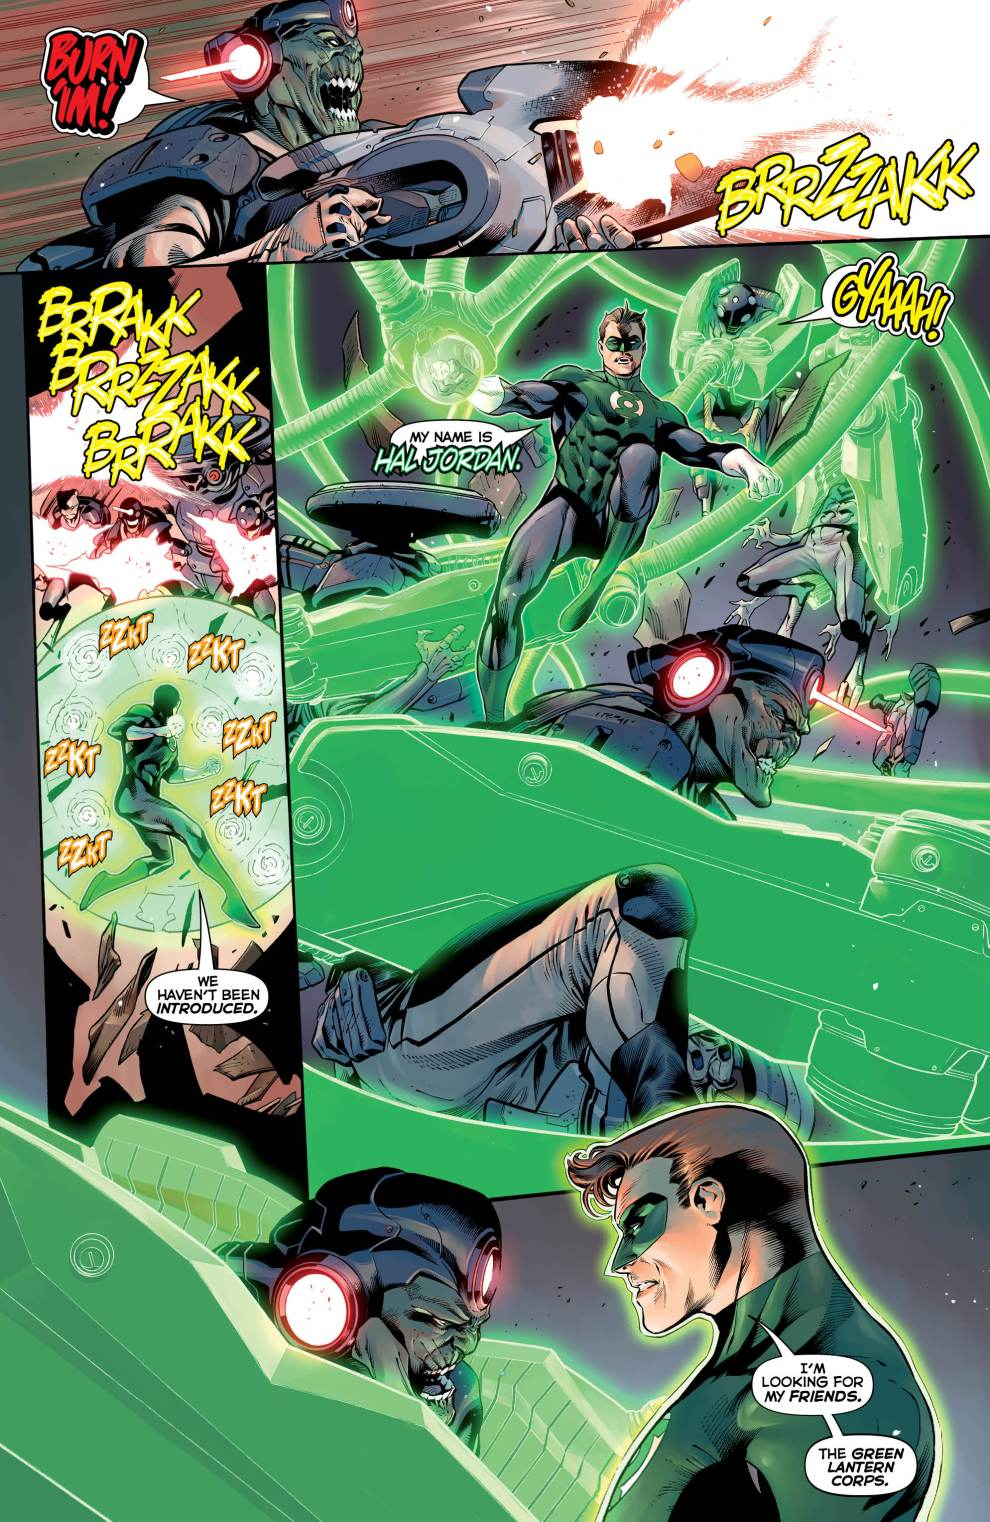 Images from 'Hal Jordan and the Green Lantern Corps #1'